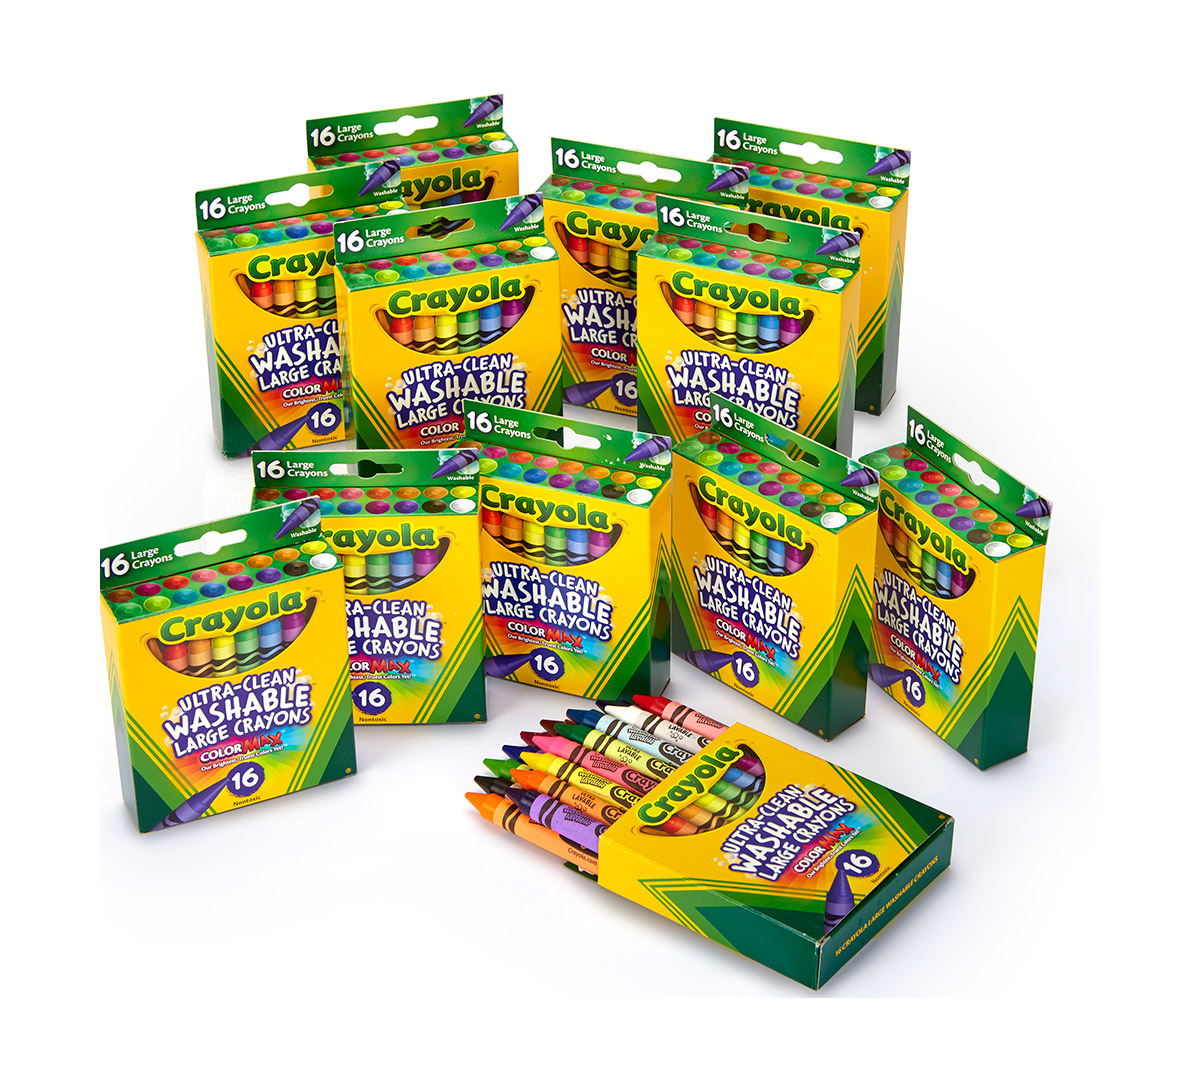 Crayola Ultra-Clean Washable Large Crayons, Bulk Set, 12 Packs of 24 Count